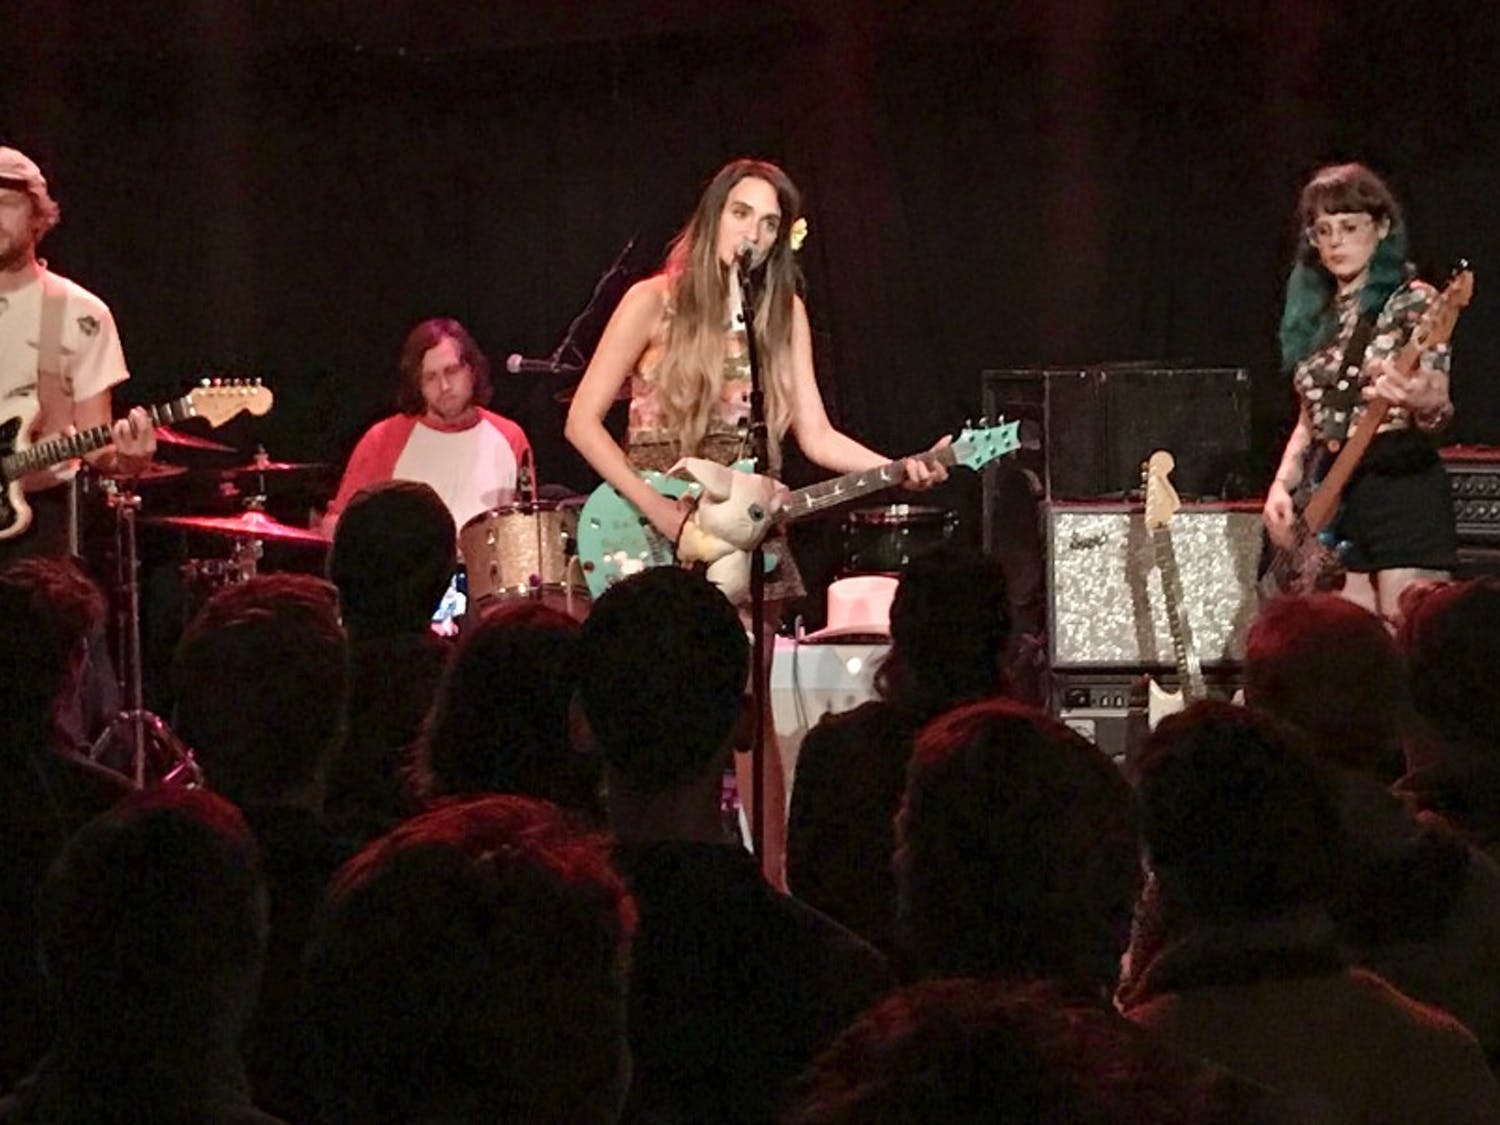 Speedy Ortiz performs gritty, indie rock to a subdued audience last Tuesday at High Noon Saloon.